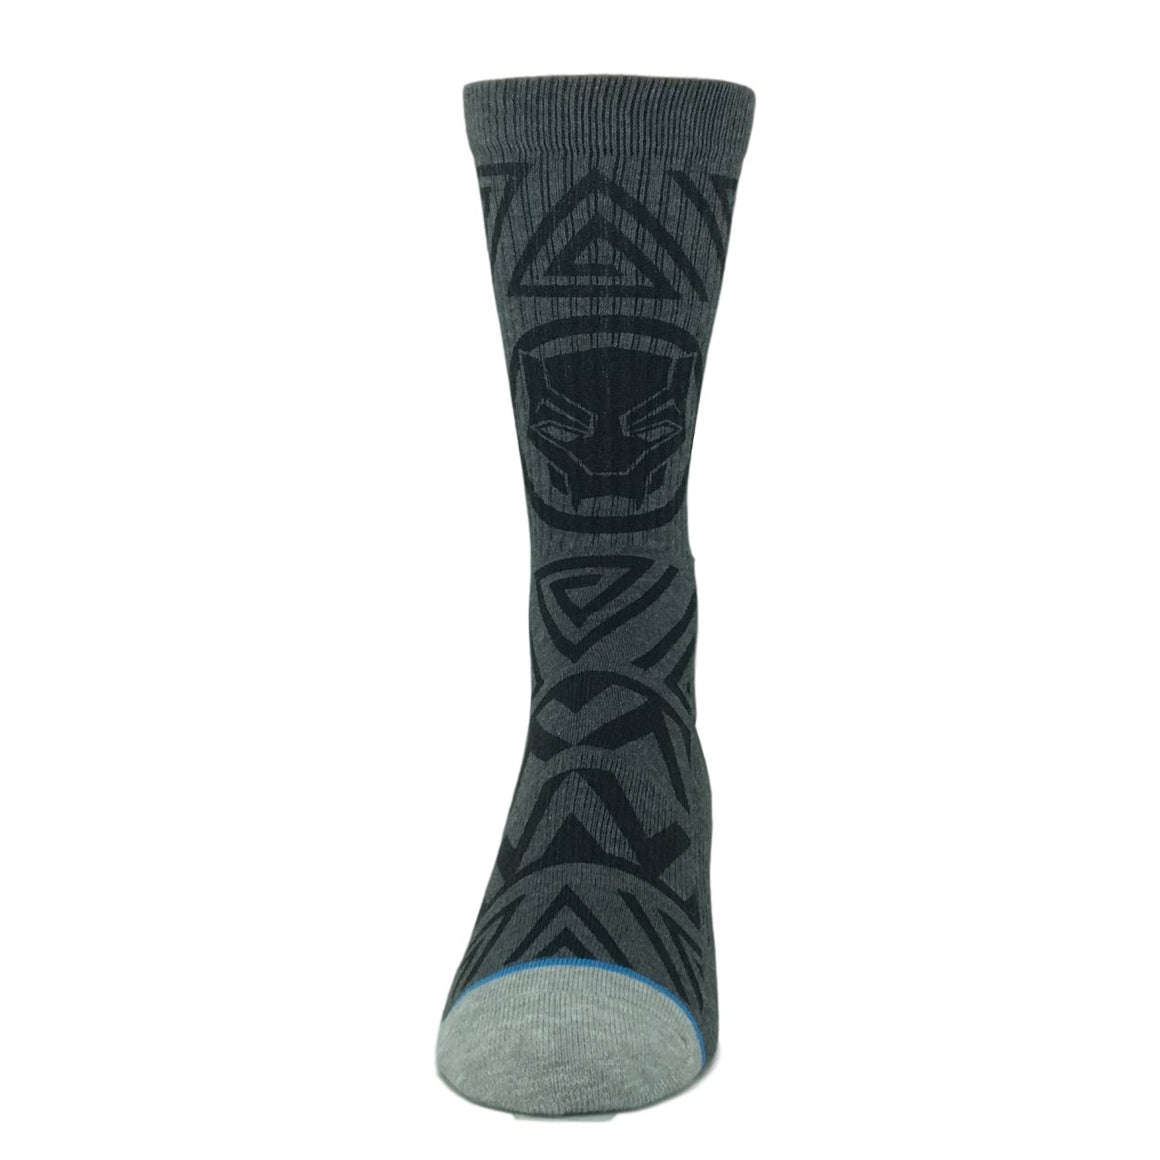 Socks - Marvel Black Panther Waterprint Socks